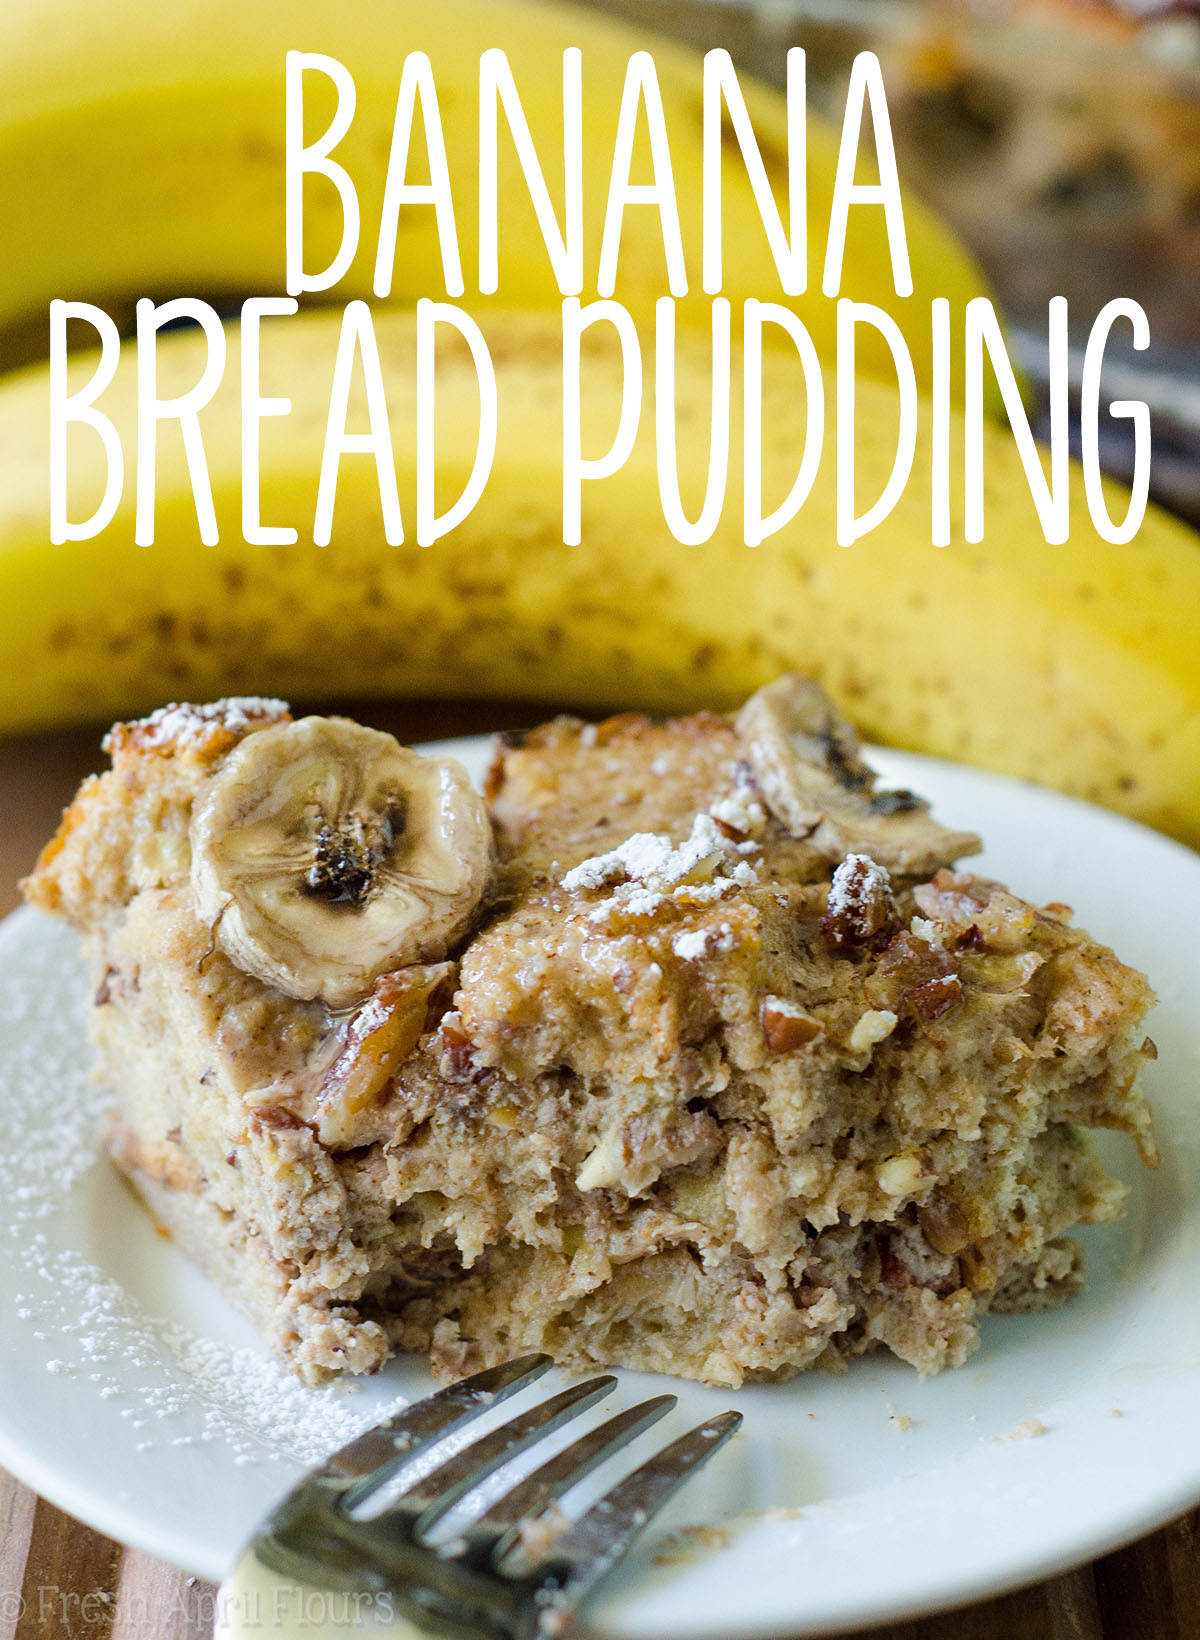 Banana Bread Pudding: A simple bread pudding made with Greek yogurt and egg custard soaked bread sweetened with brown sugar and naturally sweet bananas.